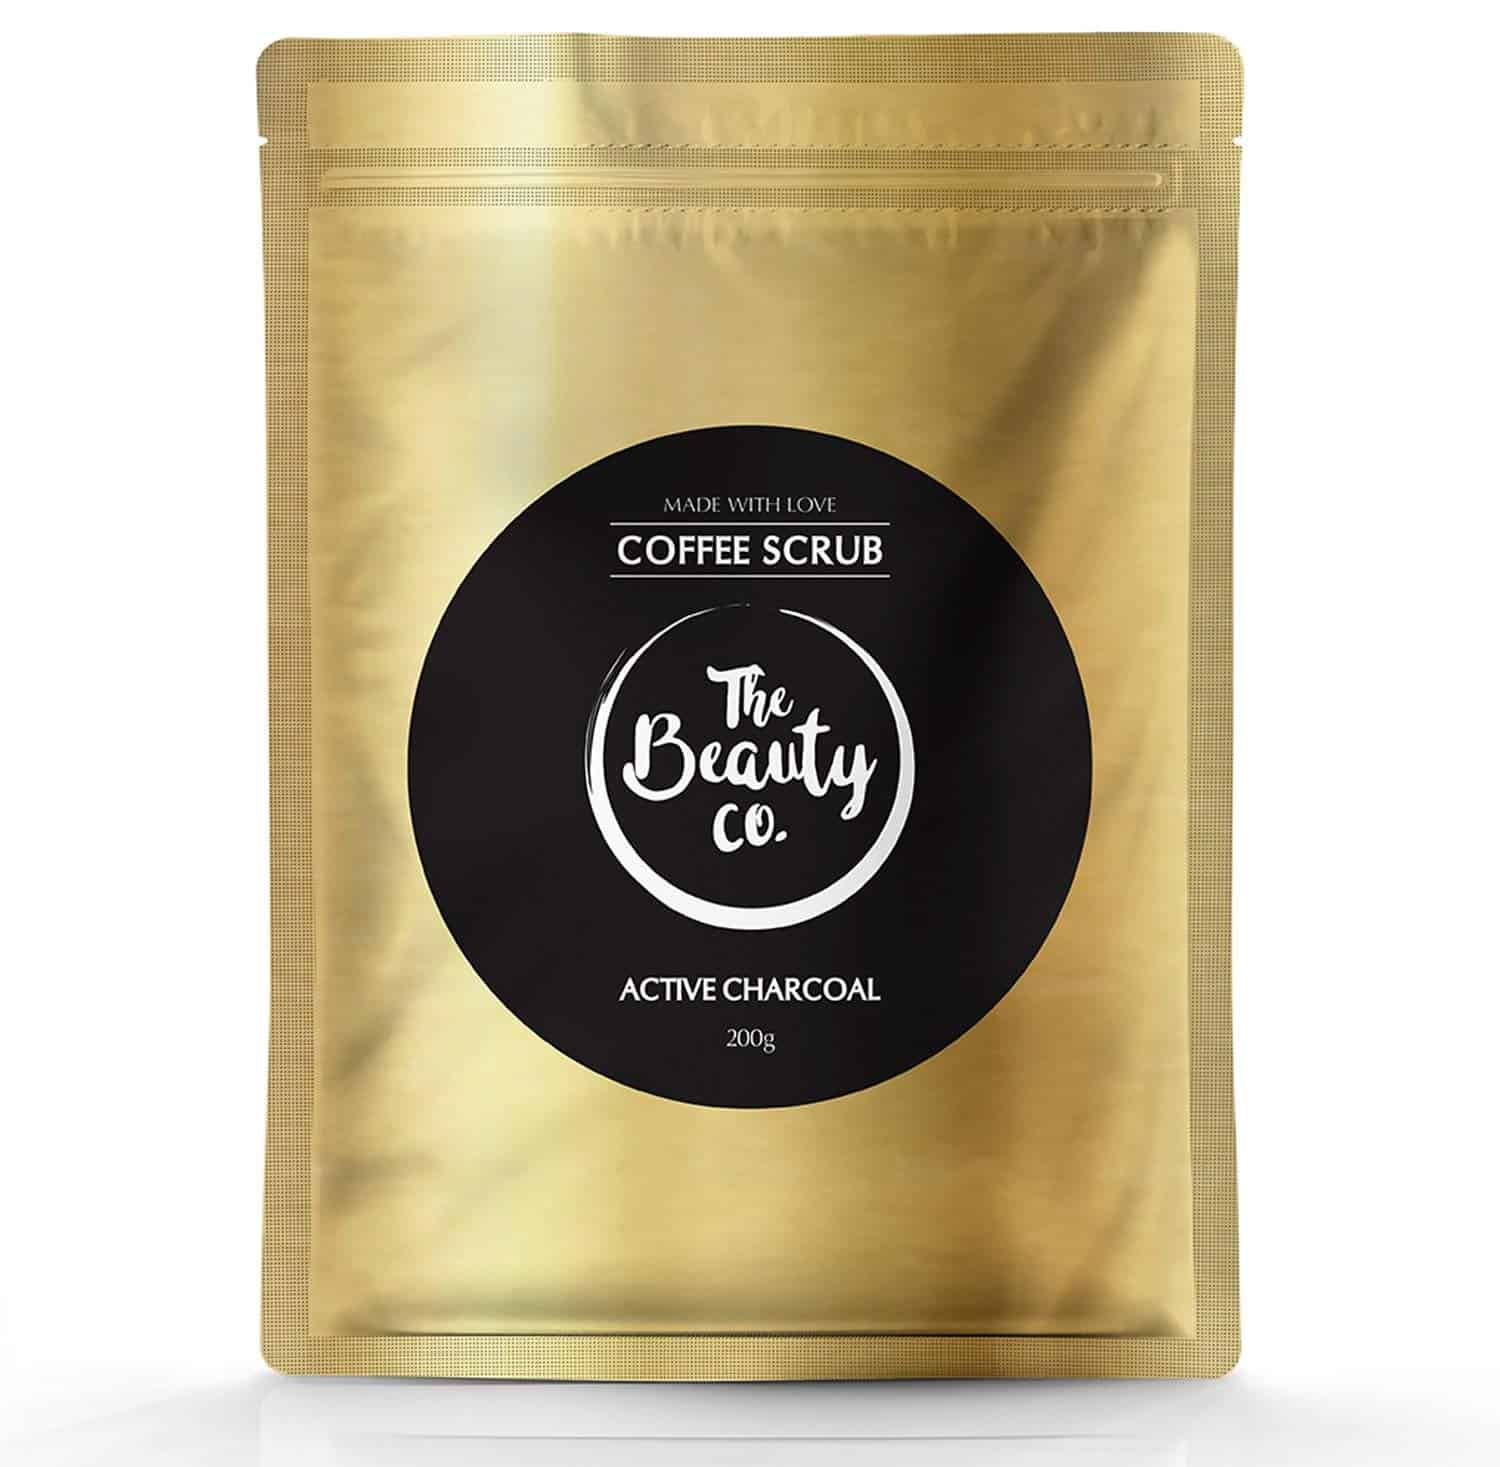 The Beauty Co. Activated Charcoal Coffee Scrub For Face & Body